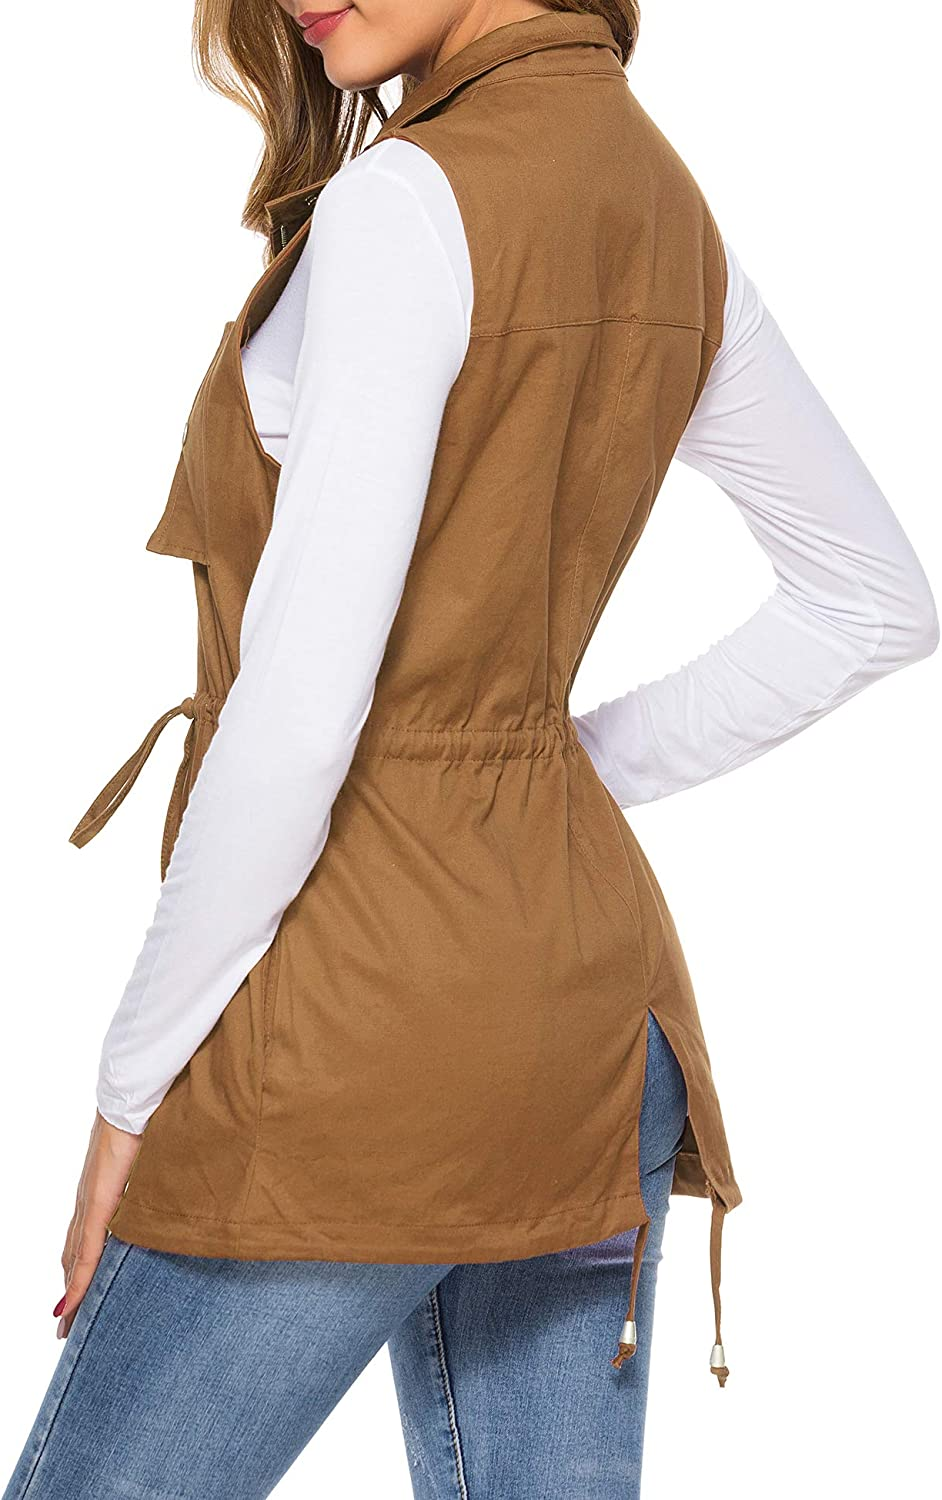 UUANG Womens Zip Up Drawstring Sleveeless Jacket Military Vest Outerwear w//Two Pockets